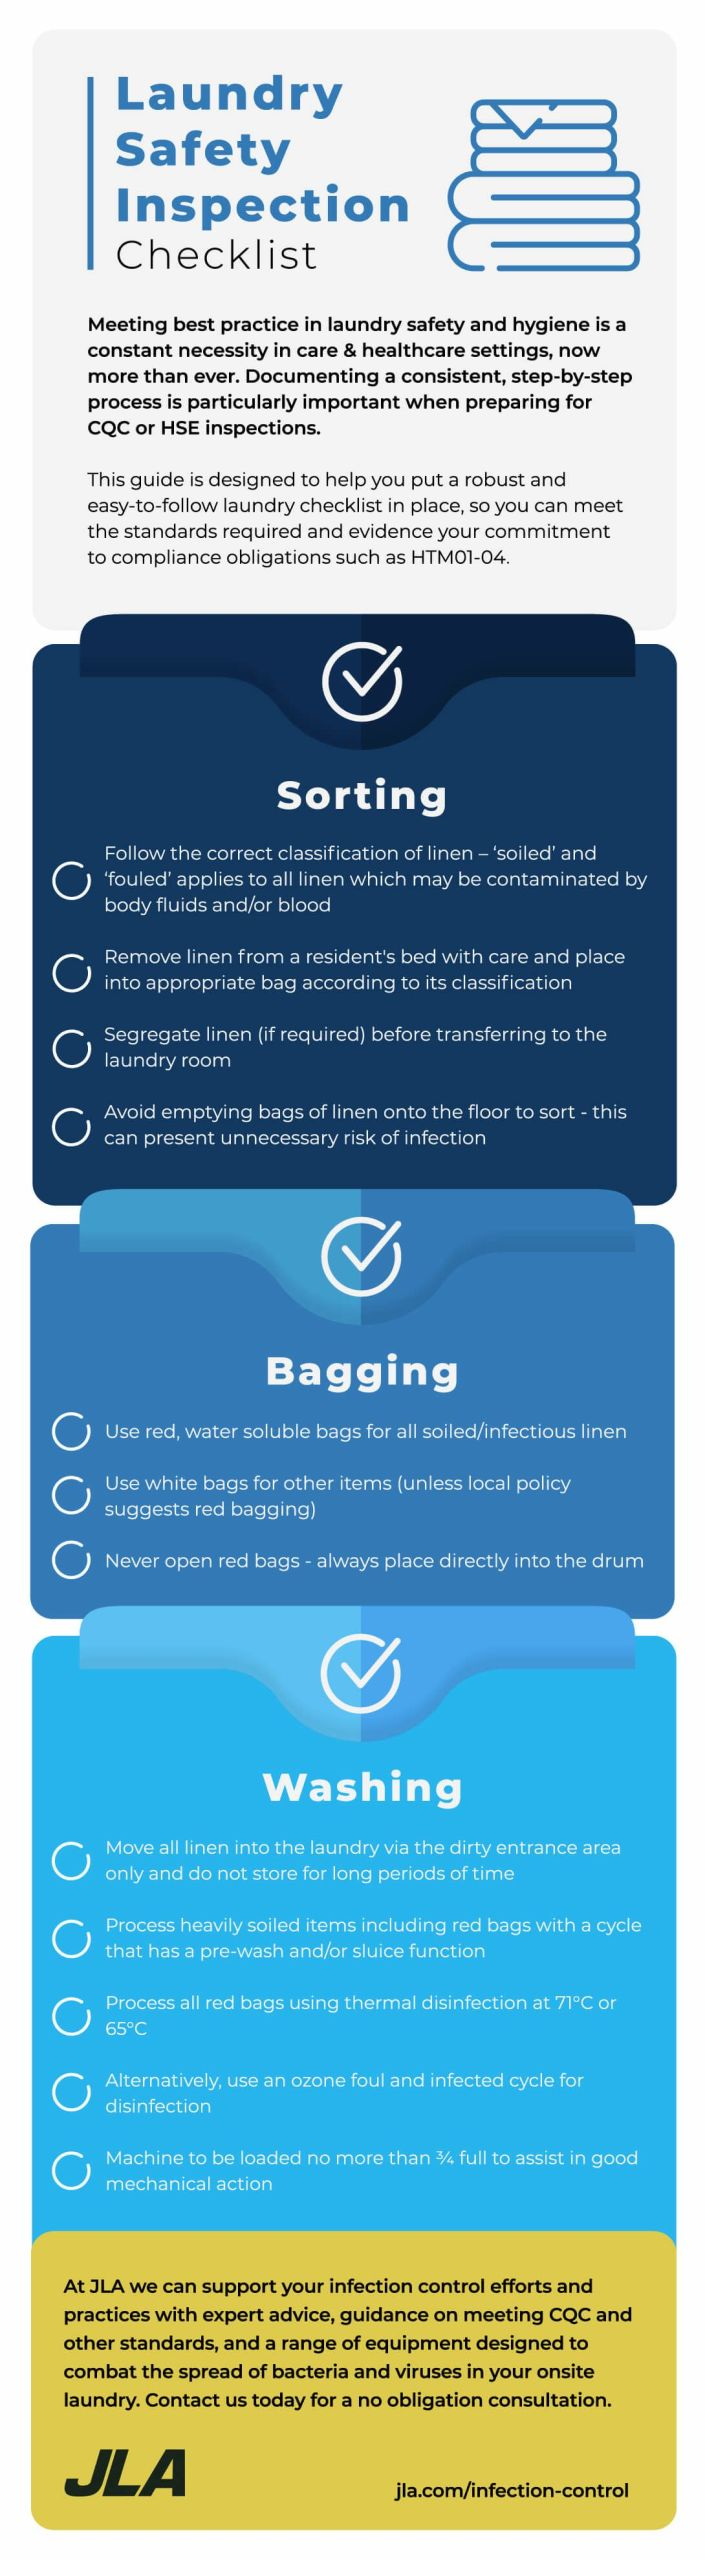 laundry safety inspection checklist